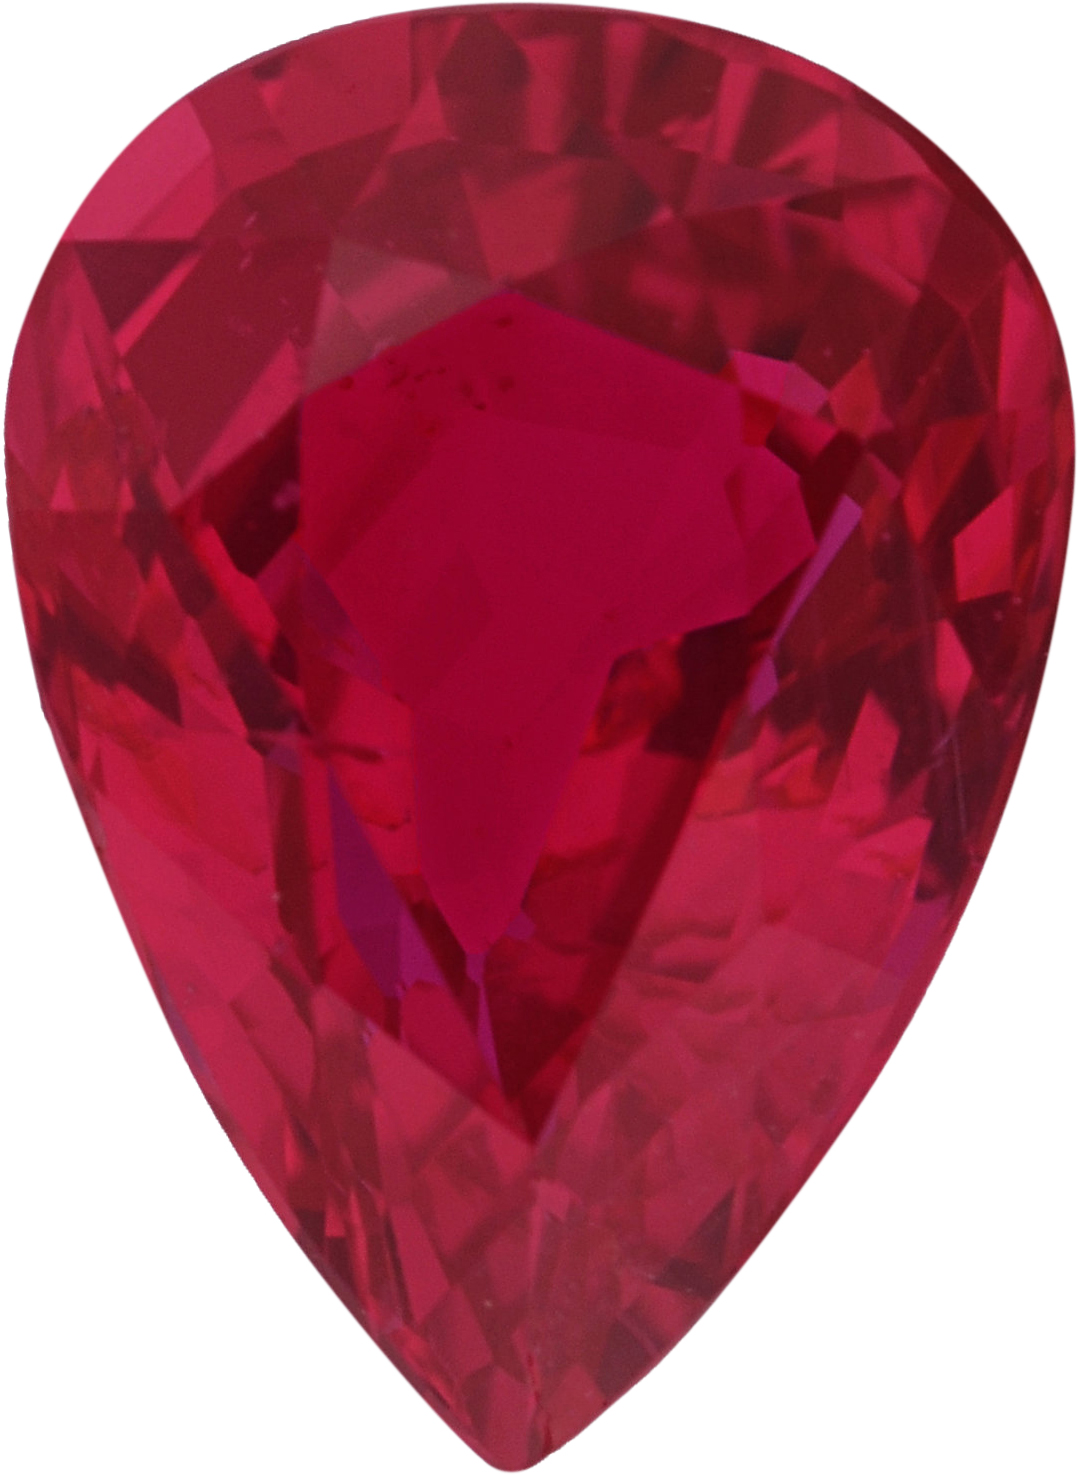 Low Price on No Heat Pear Shape Loose Ruby Gem, Deep  Red Color, 7.53 x 5.48 mm, 1.14 carats